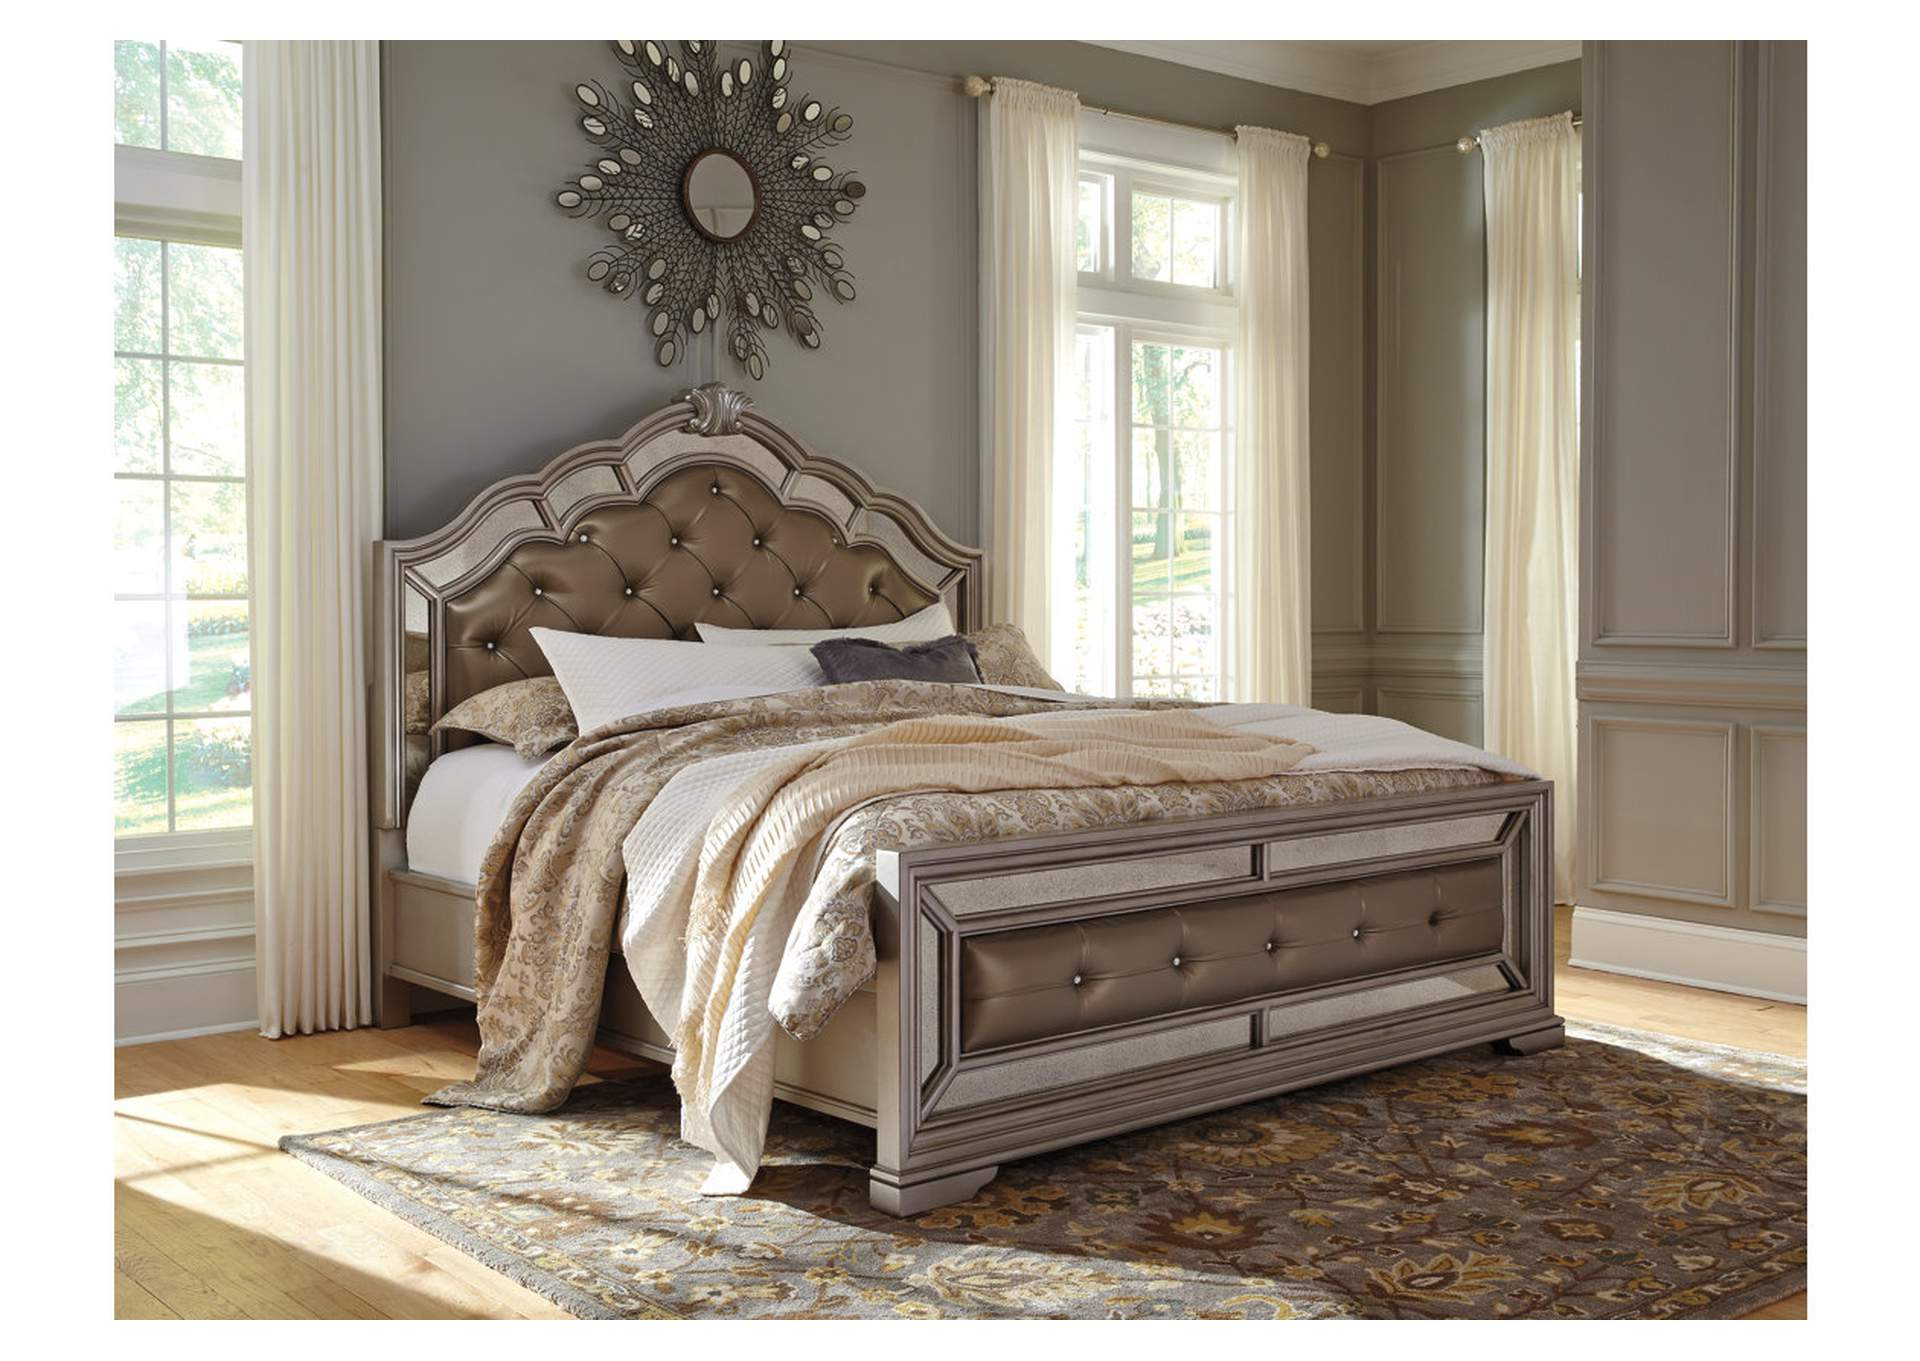 Birlanny Silver California King Upholstered Bed,Signature Design By Ashley